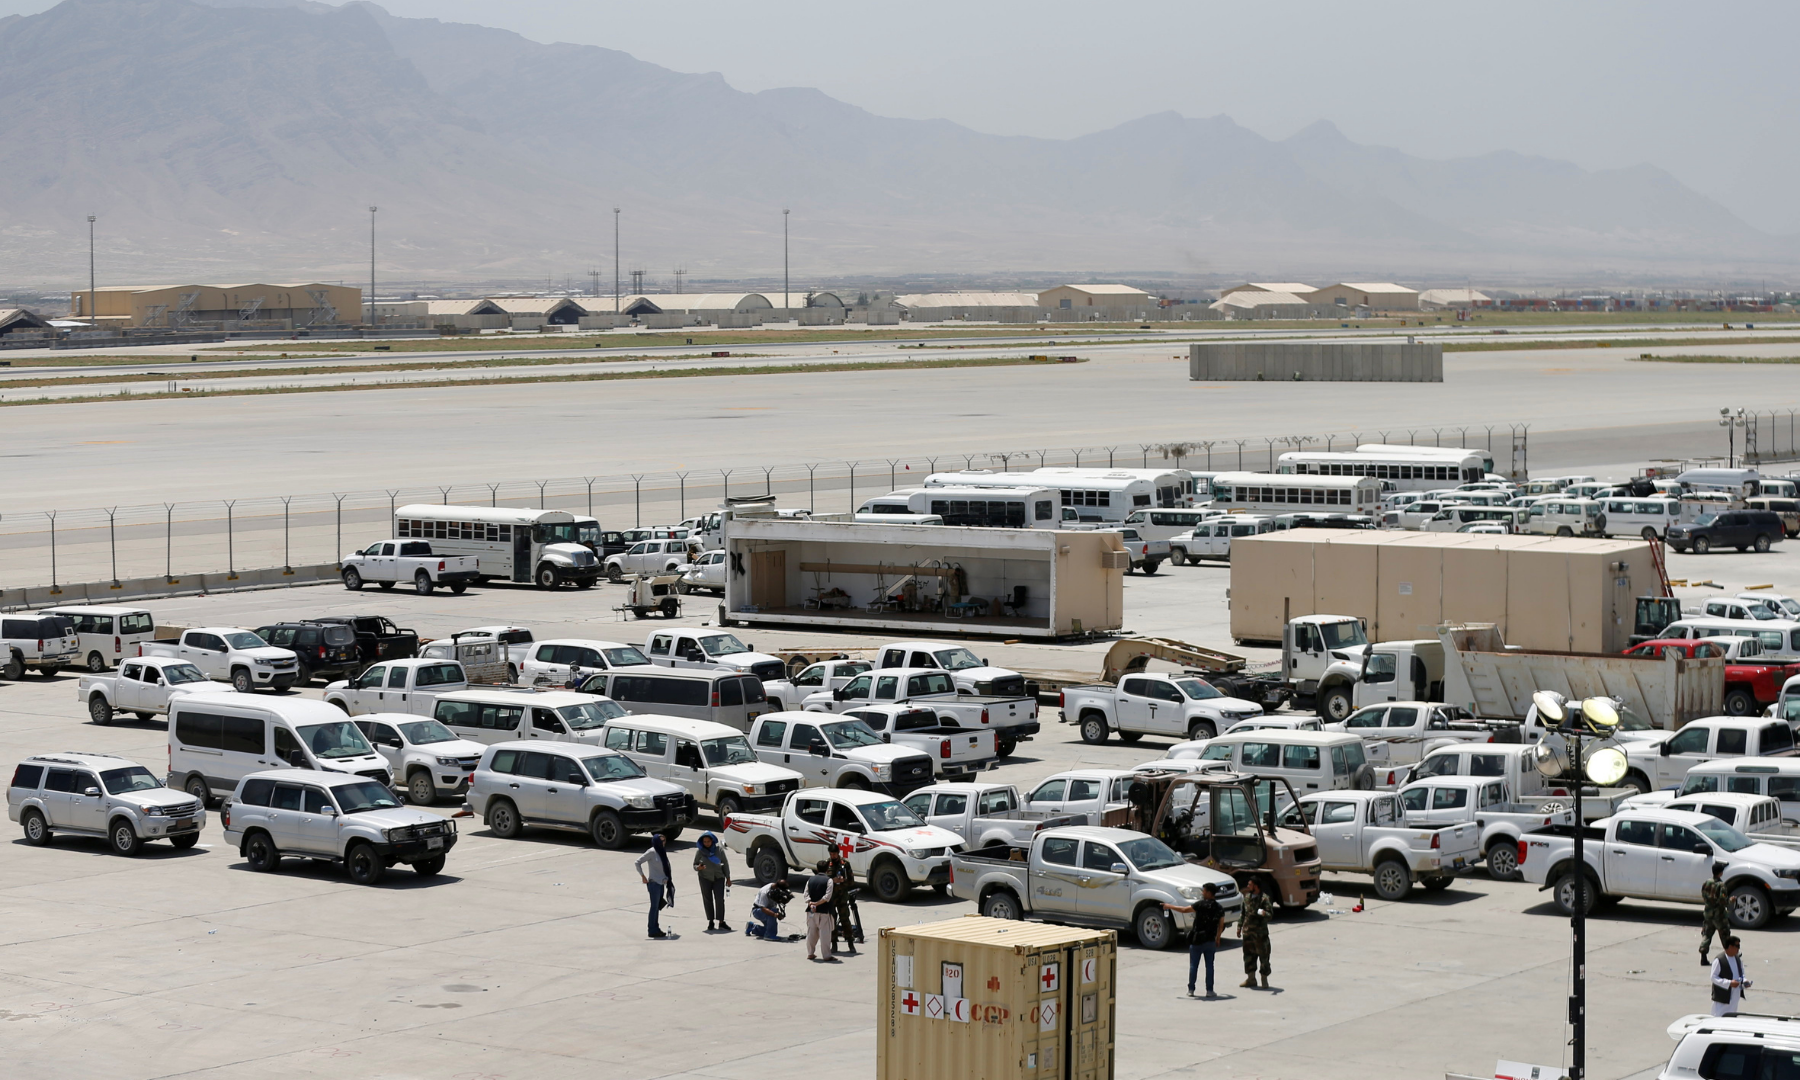 Parked vehicles are seen in Bagram US air base, after American troops vacated it, in Parwan province, Afghanistan. — Reuters